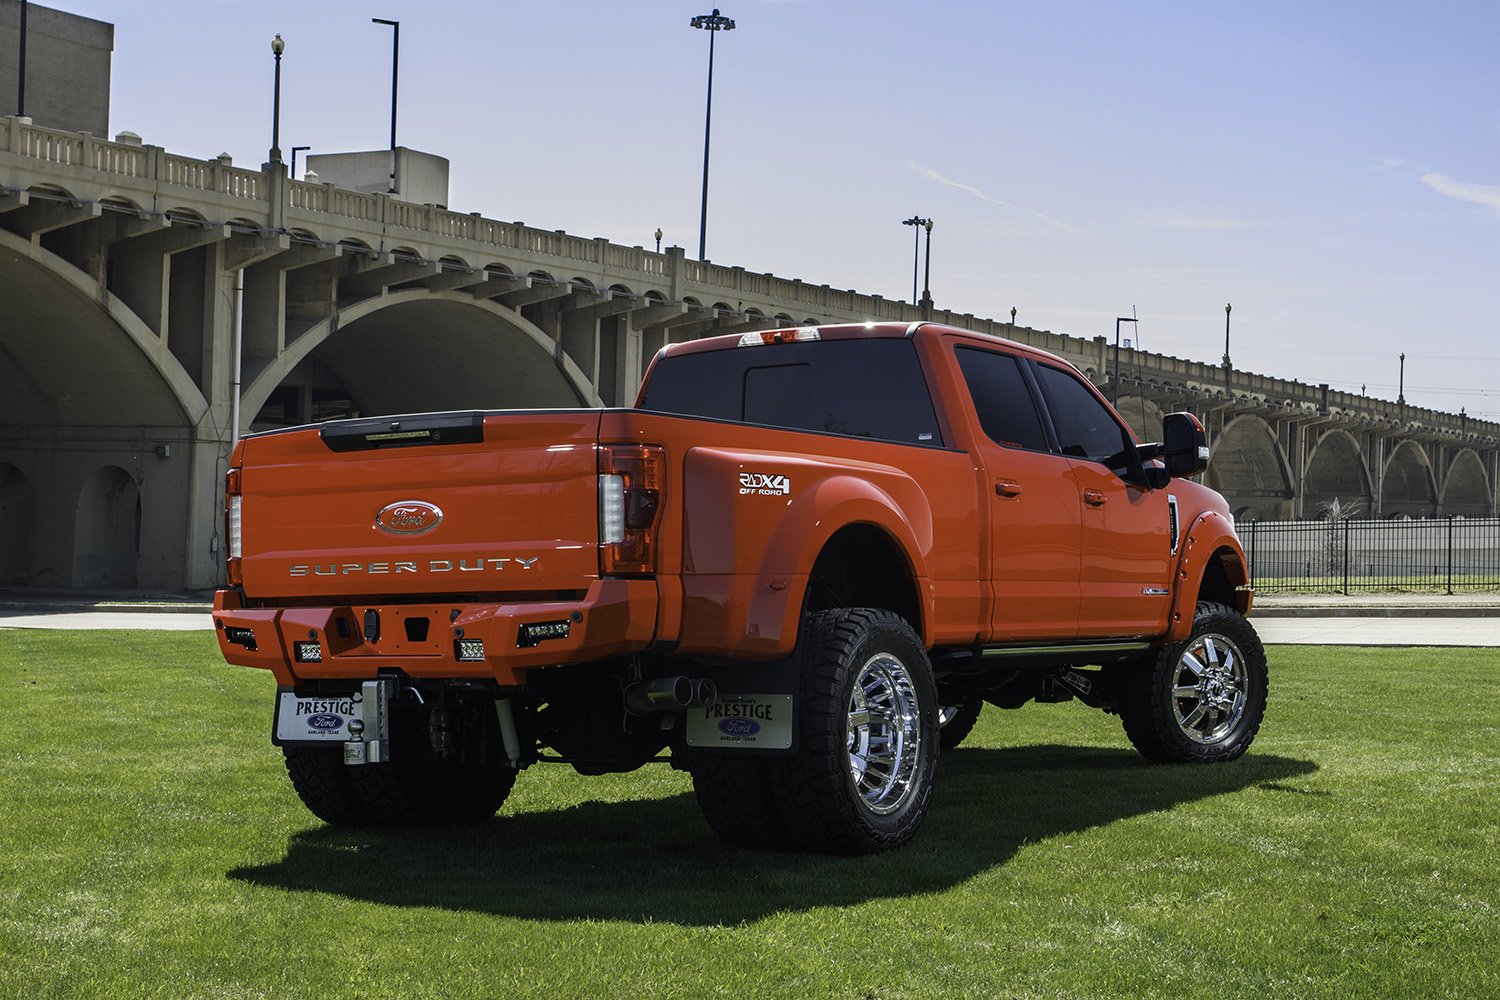 2018 Mustang Build And Price >> 2018 Ford F-350 Dually Big Red - For Sale - RAD RIDES